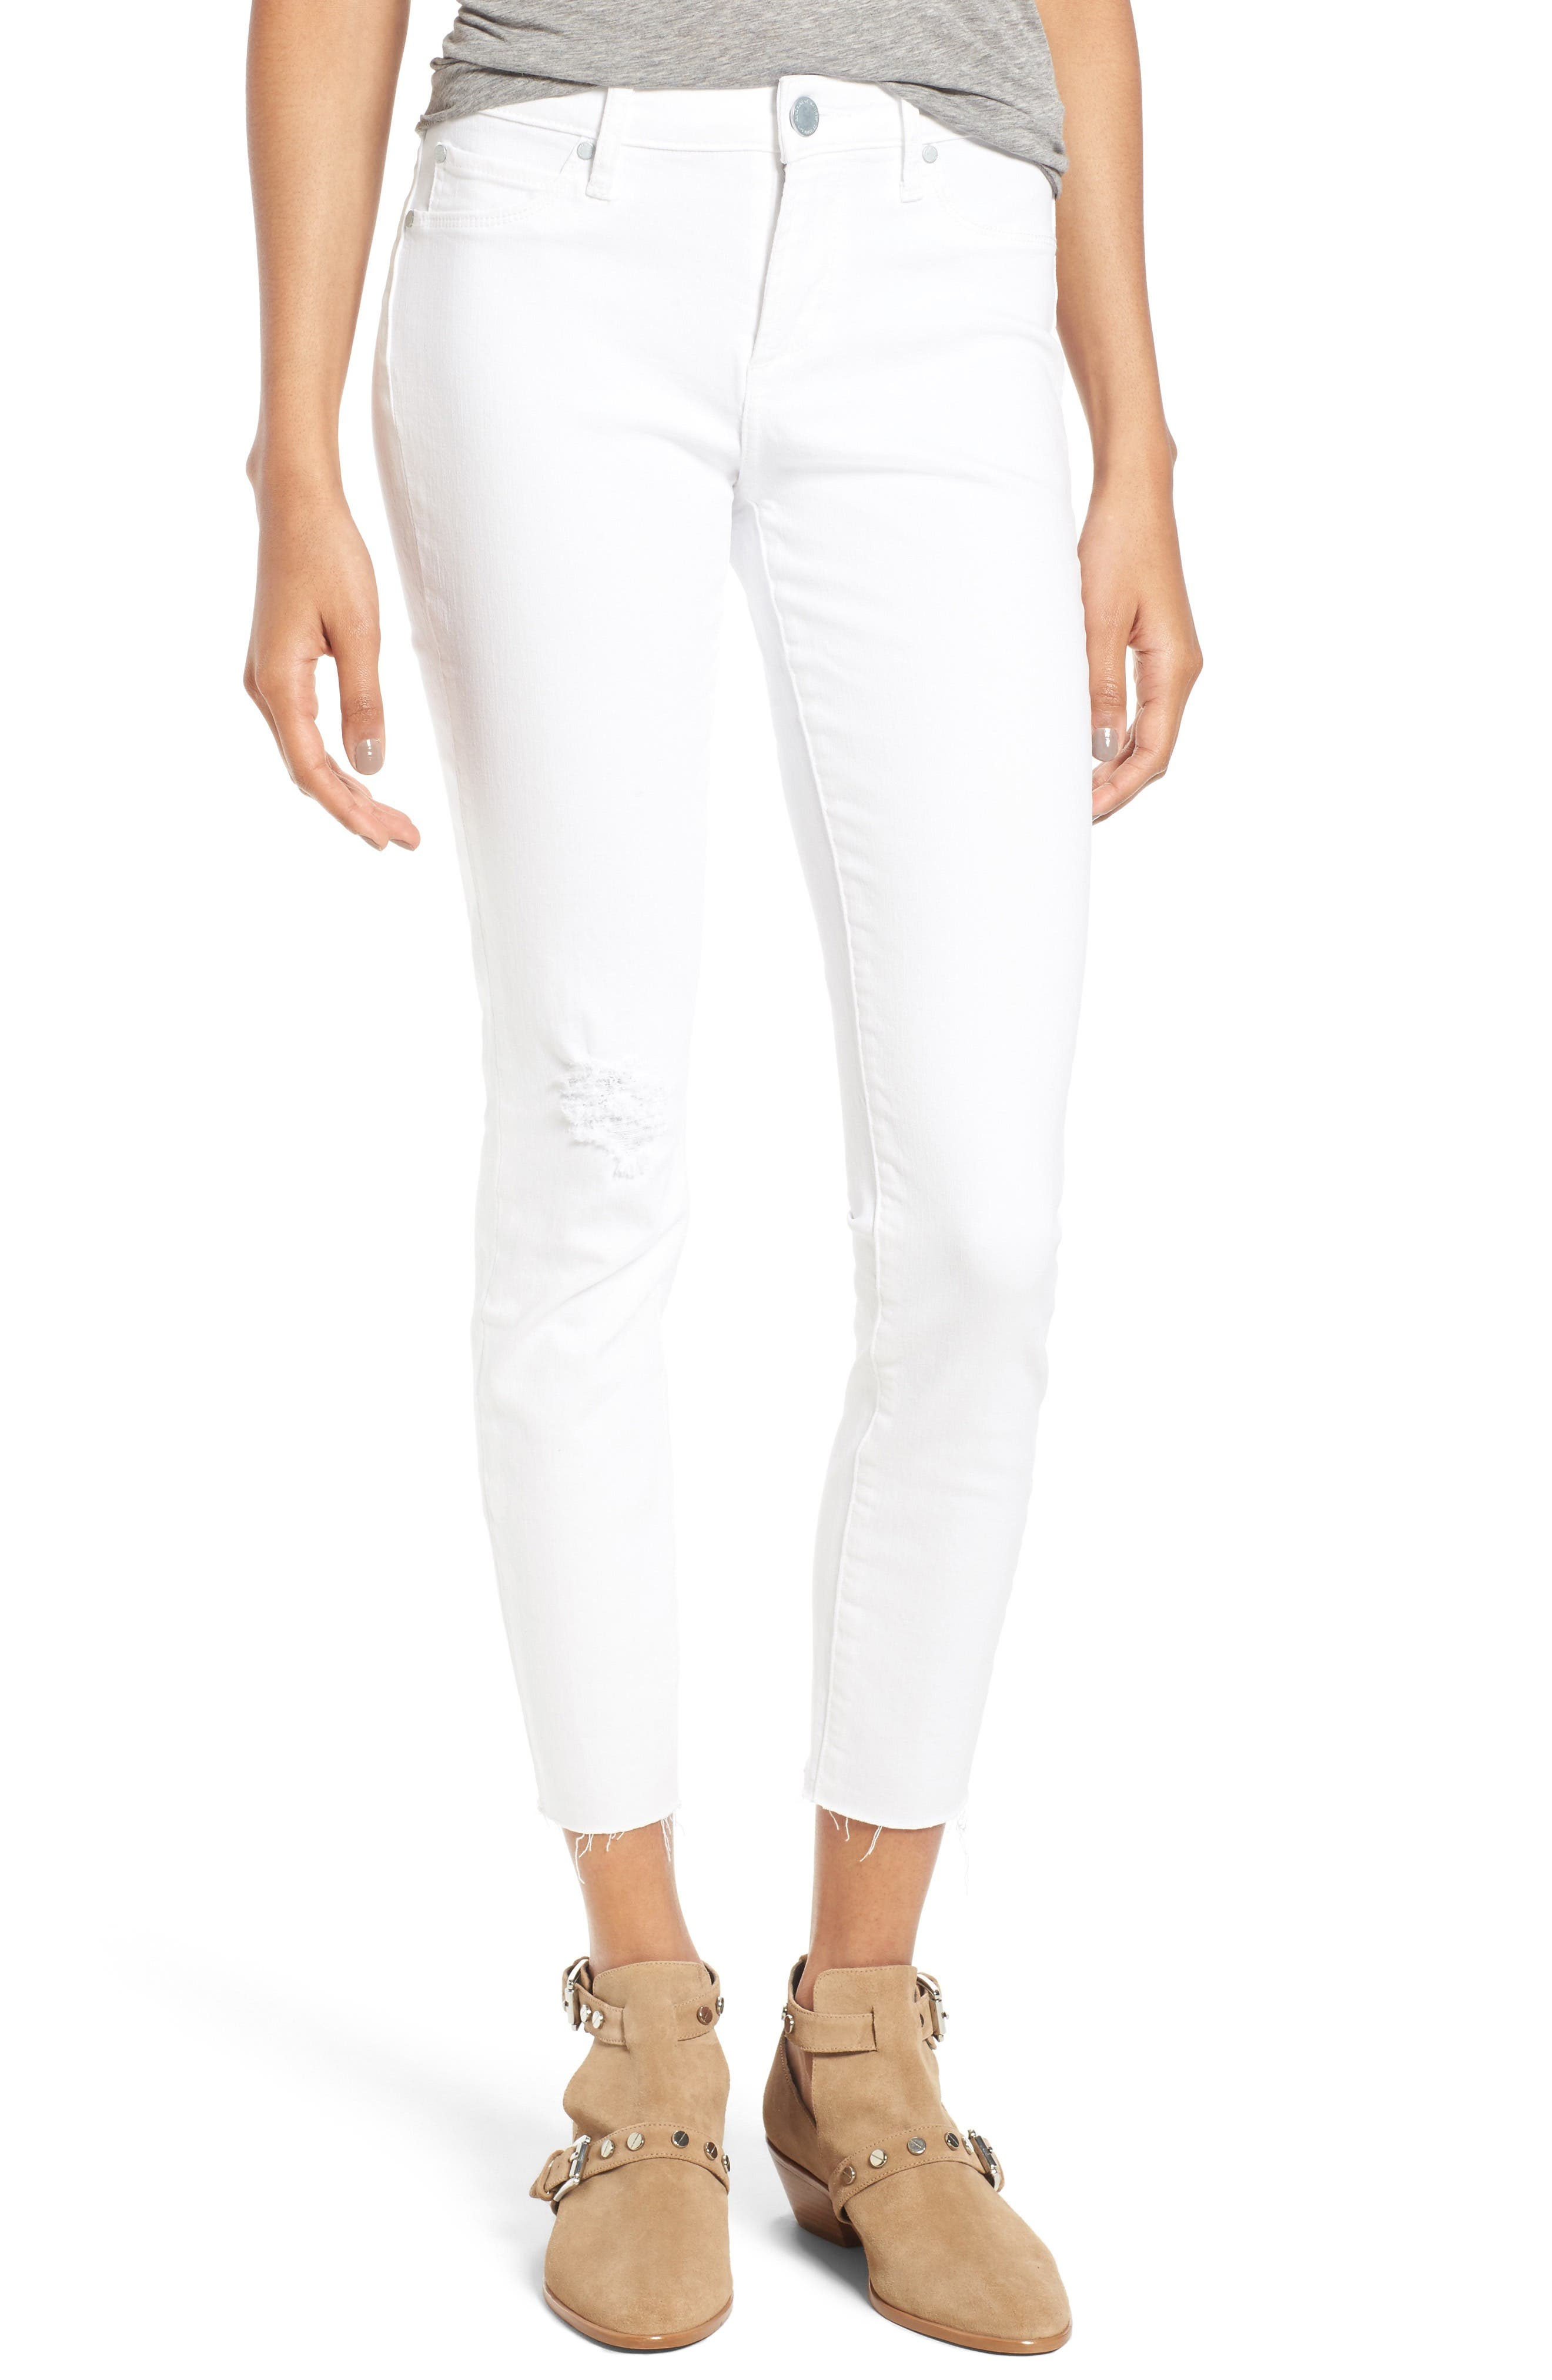 ARTICLES OF SOCIETY Carly Skinny Crop Jeans, Main, color, 110